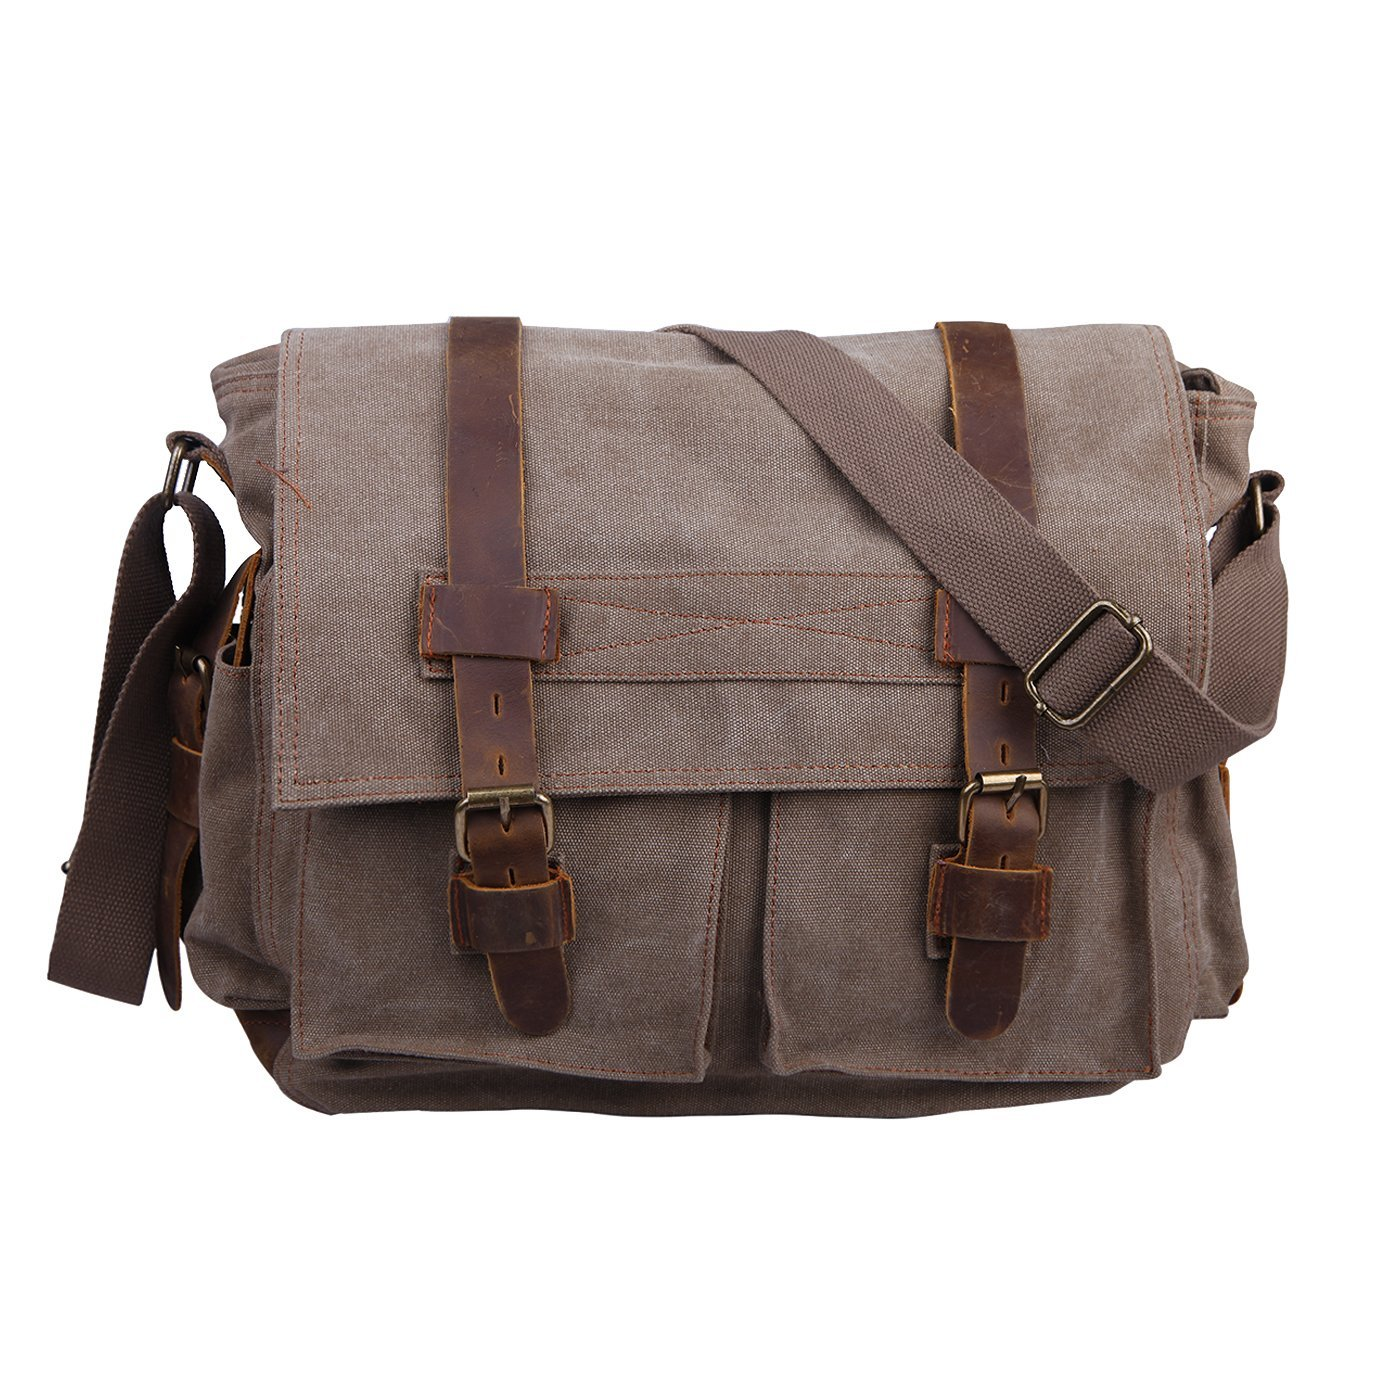 HDE Vintage Canvas Messenger Bag Leather Military Tactical Style Travel Shoulder Field Bag fits 15 Inch Laptop by HDE